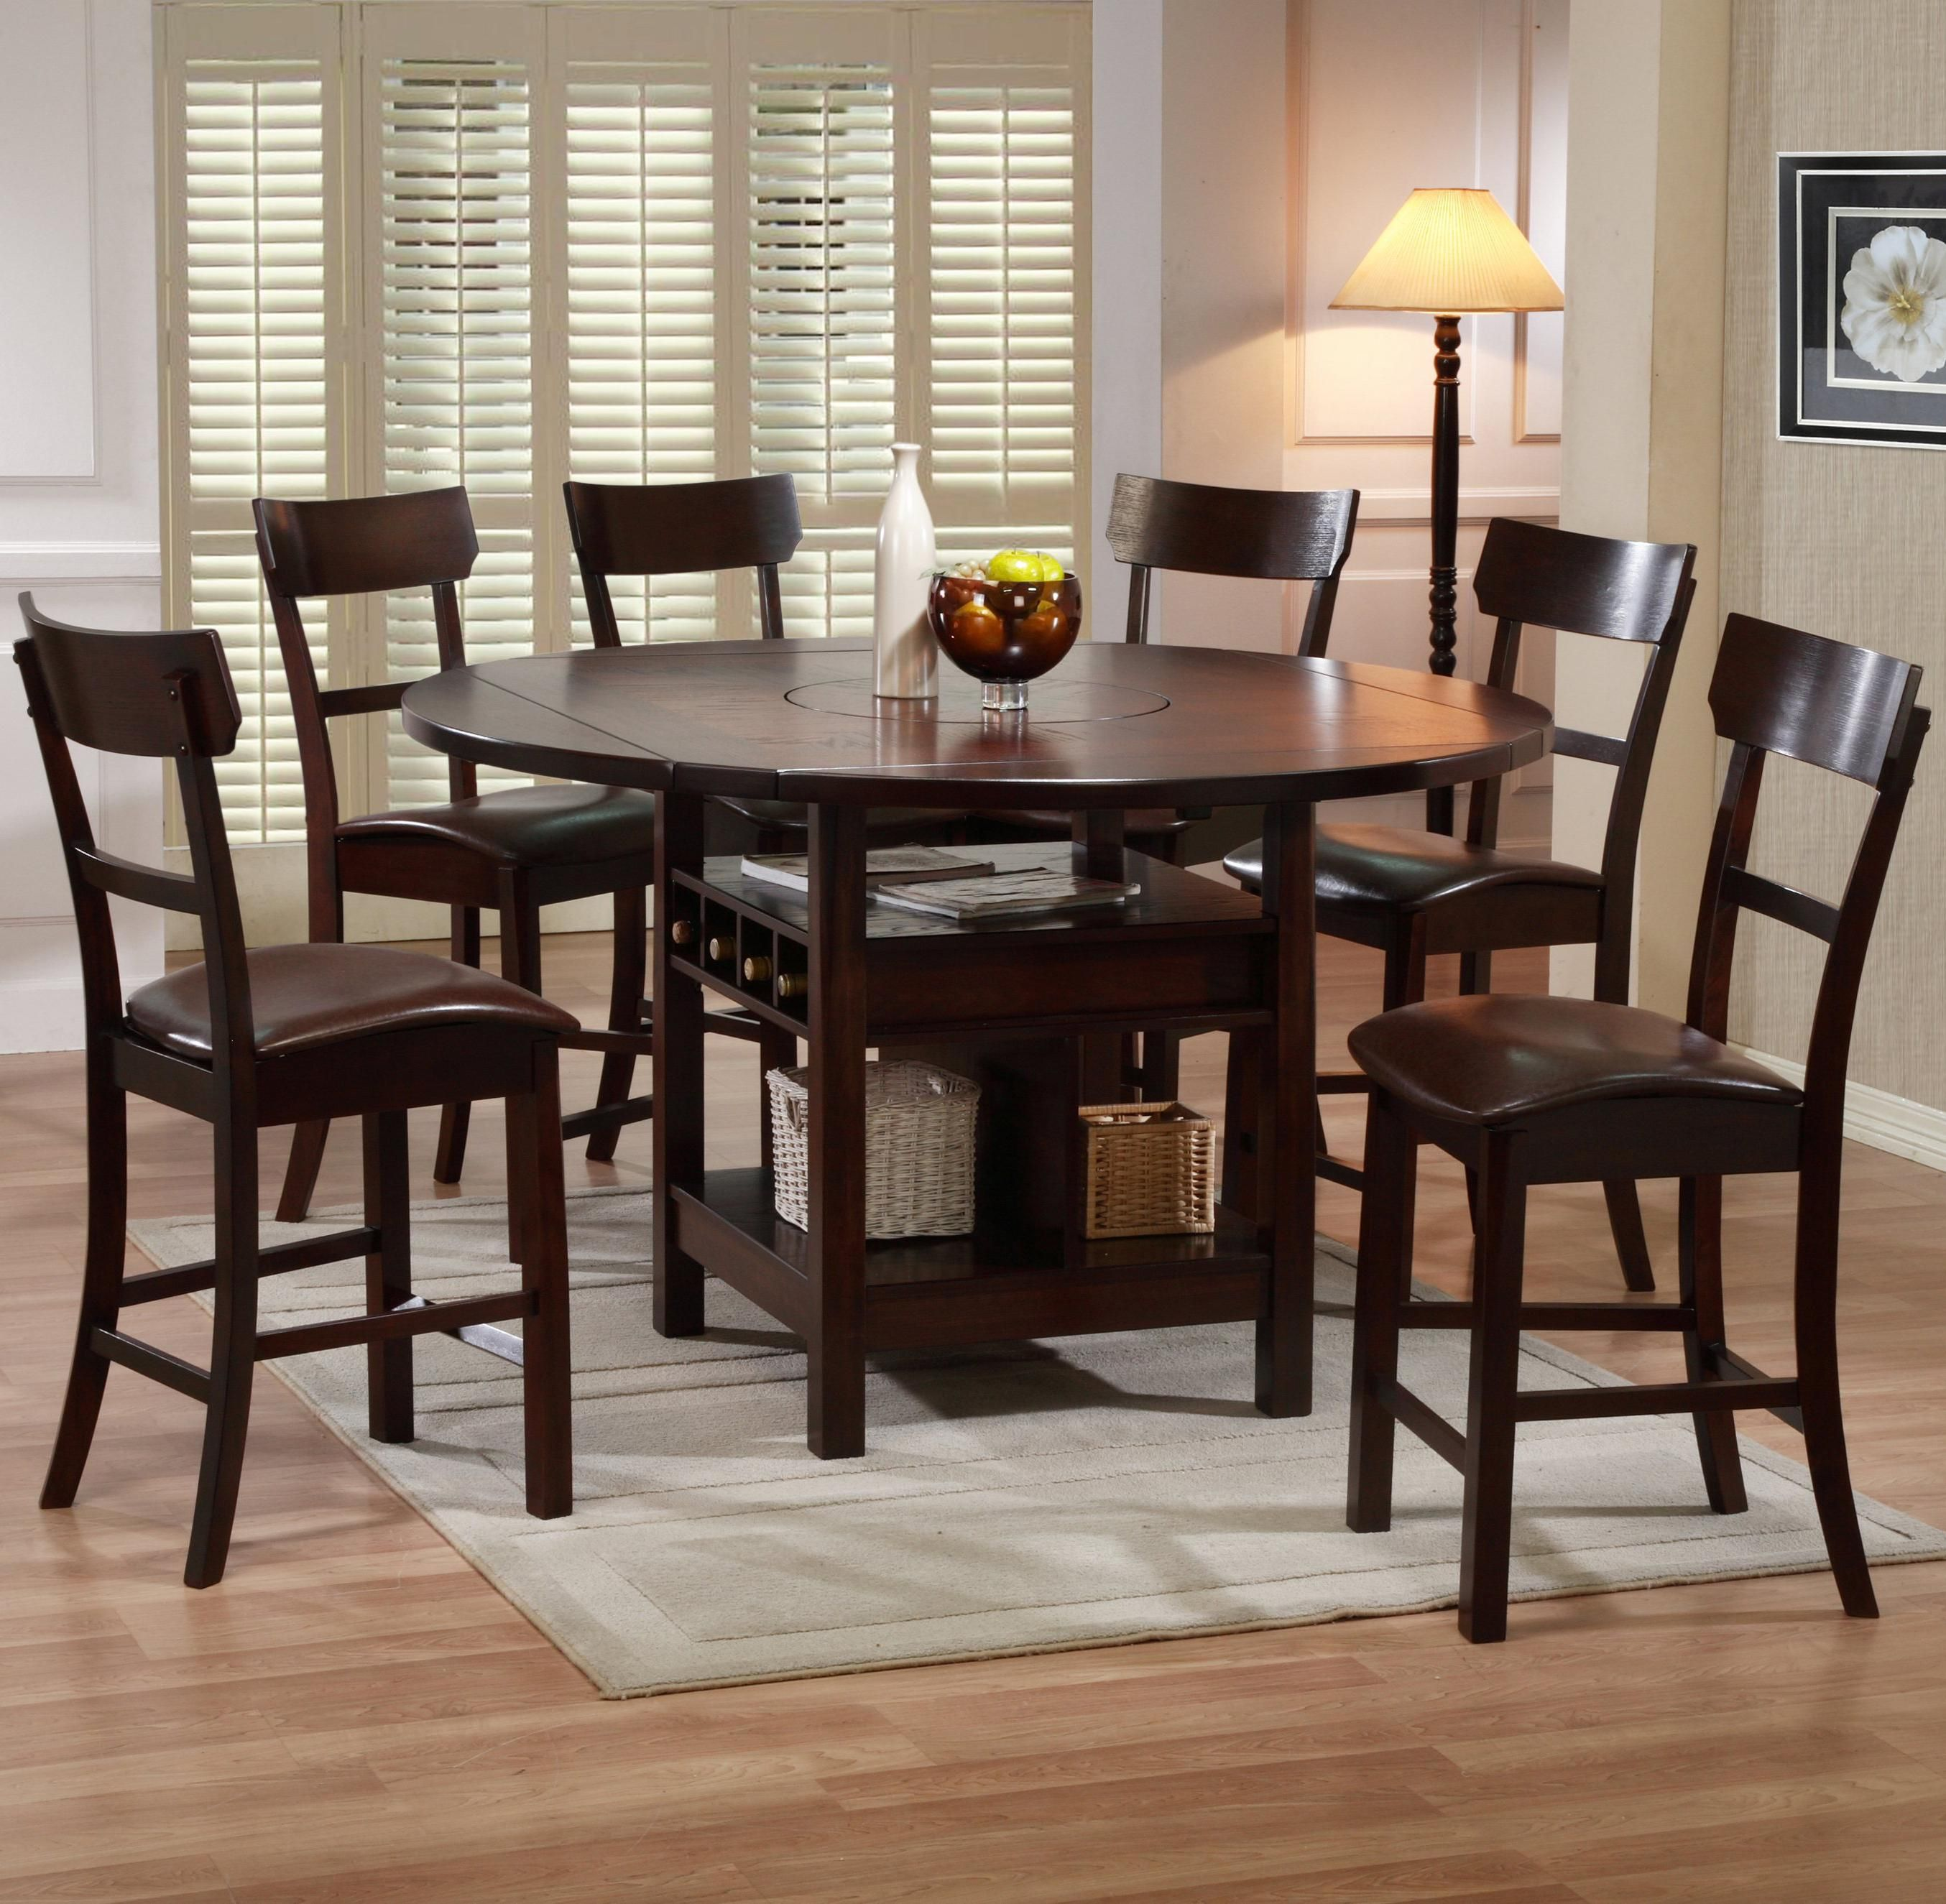 Cory Cory Table 4 Stools Set by Holland House | For the Home ...